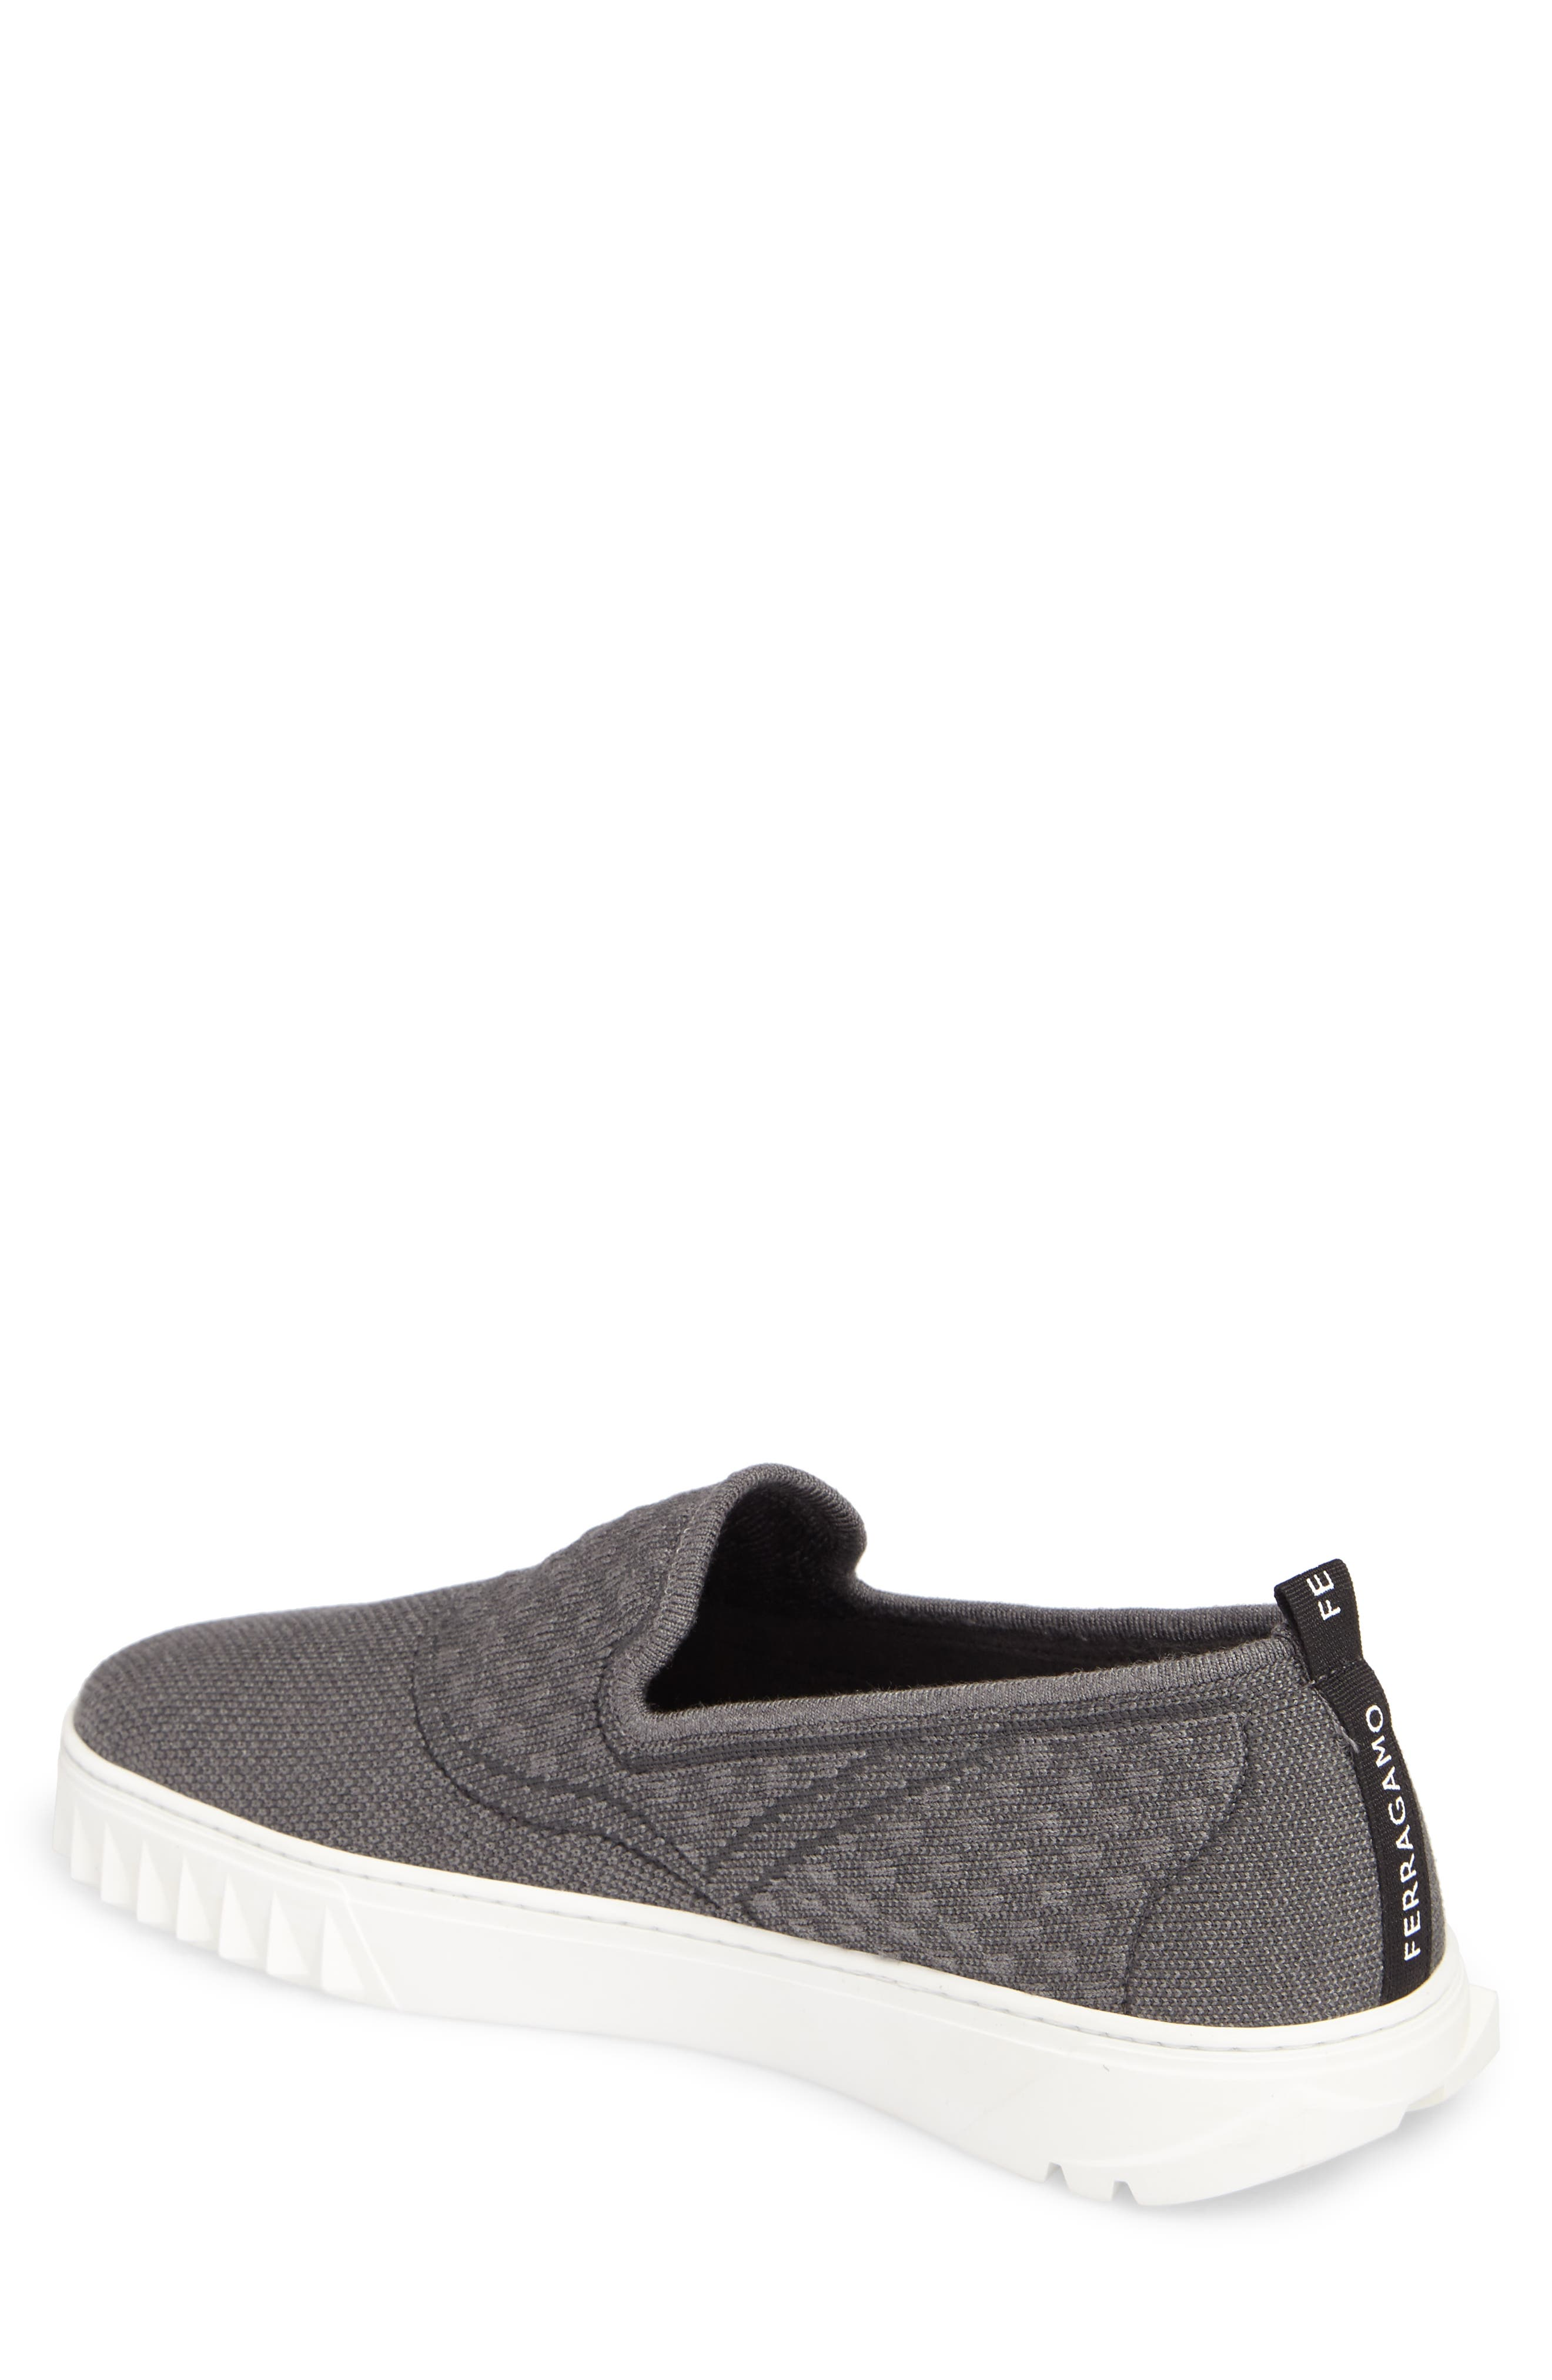 Clay Slip-On Sneaker,                             Alternate thumbnail 2, color,                             Charcoal